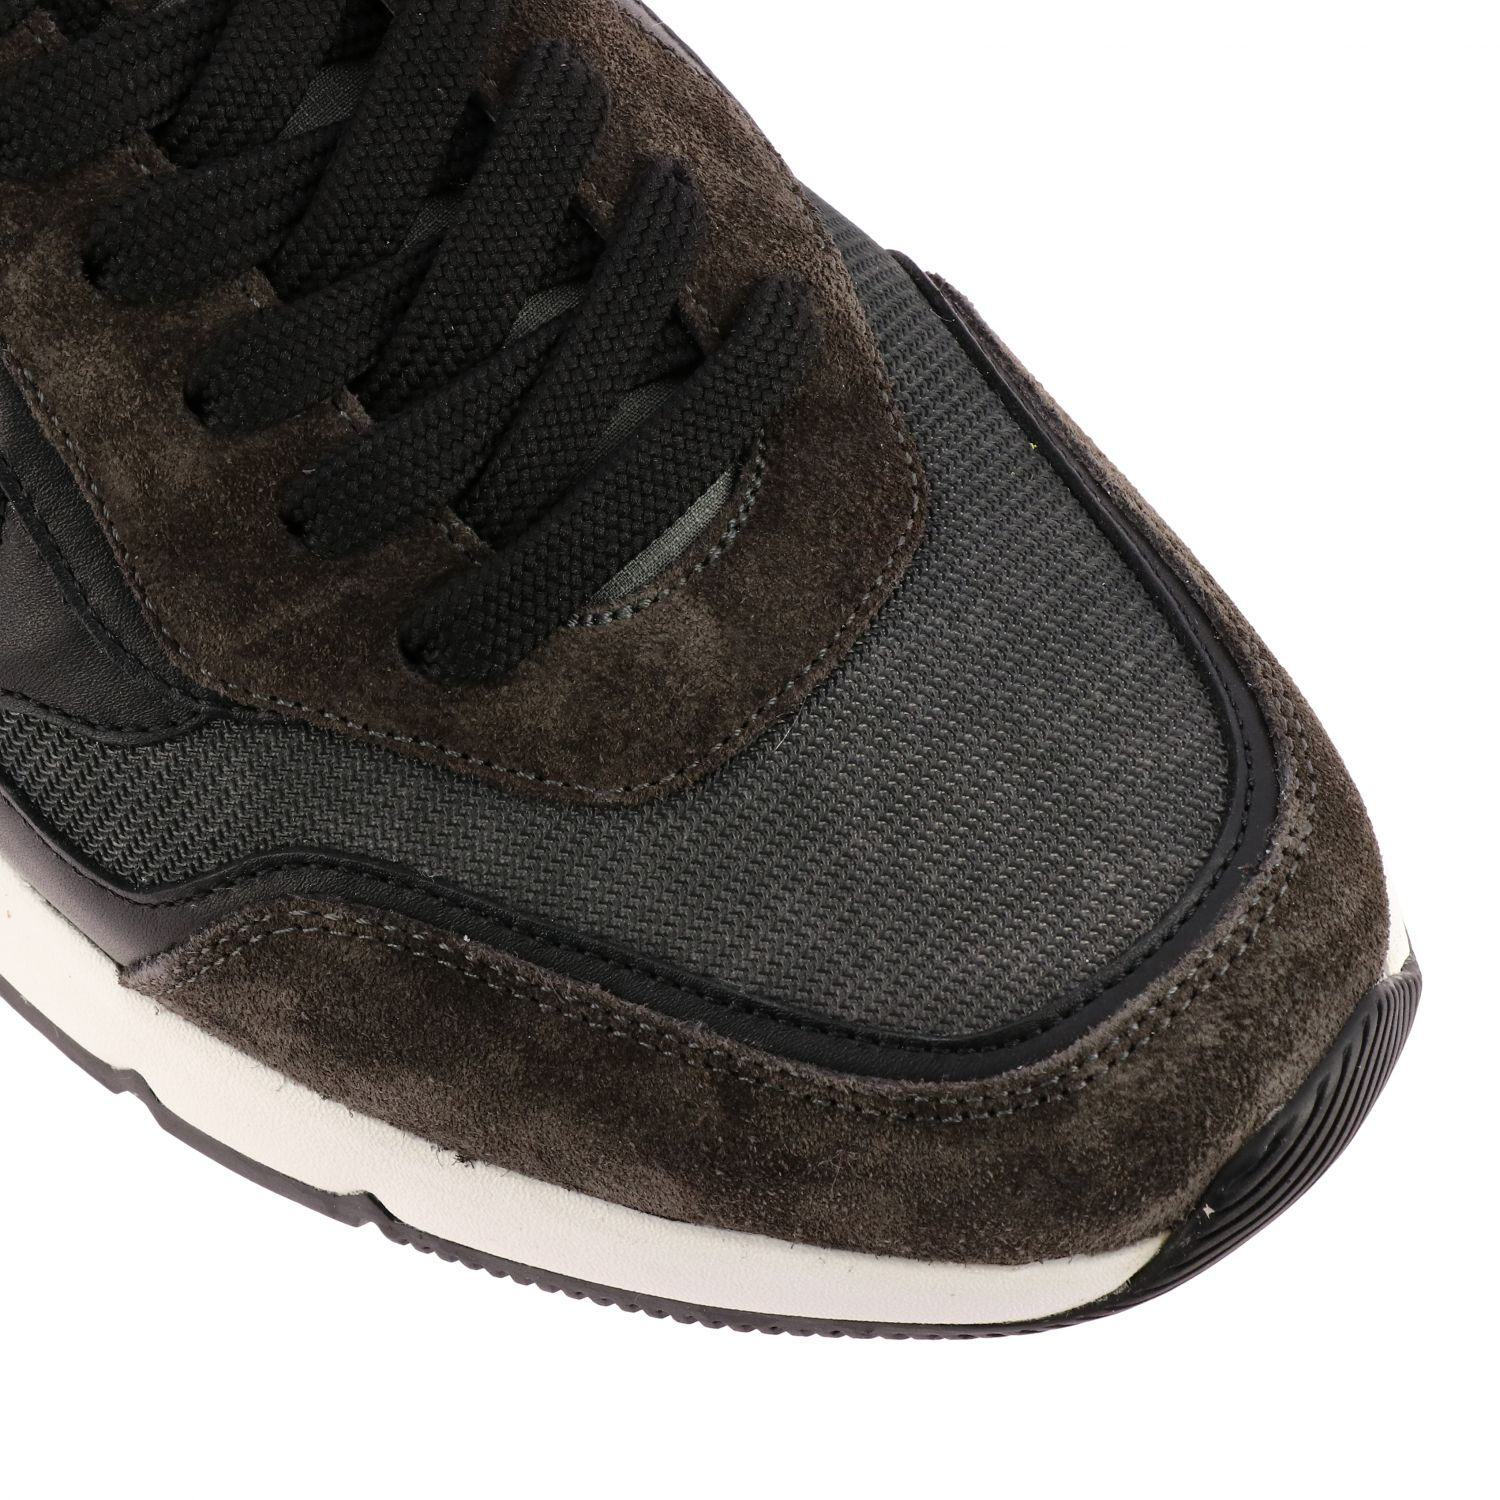 Trainers men Voile Blanche charcoal 4